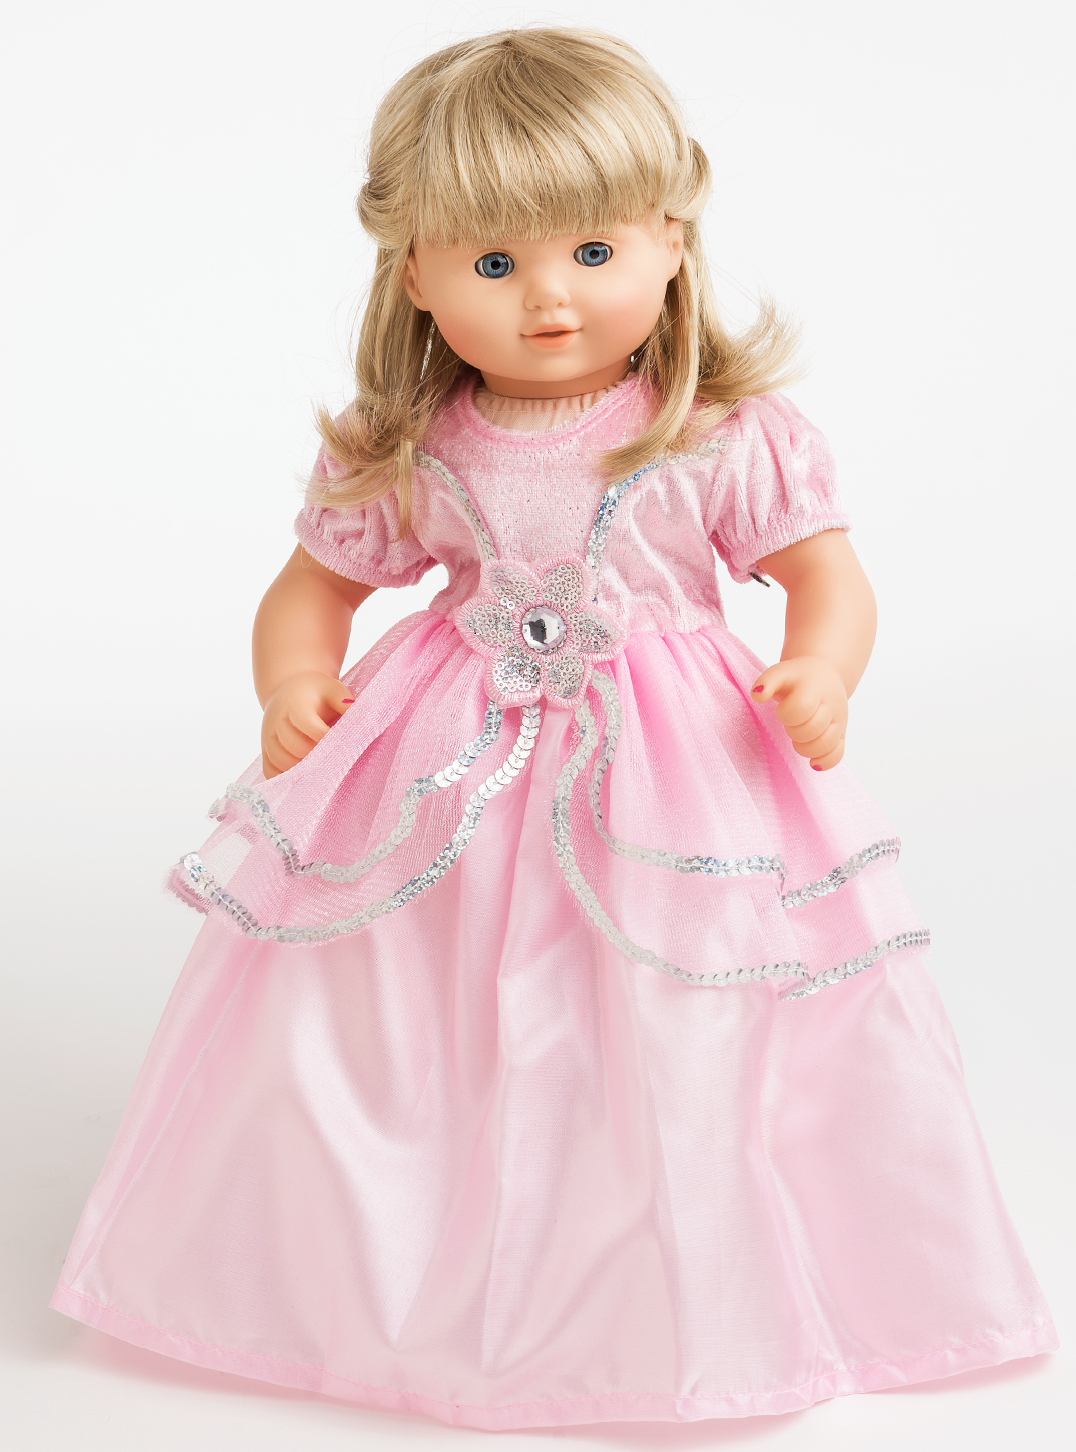 http://www.everything-princesses.com/images/P/Royal%20Pink%20Doll%20dress.png